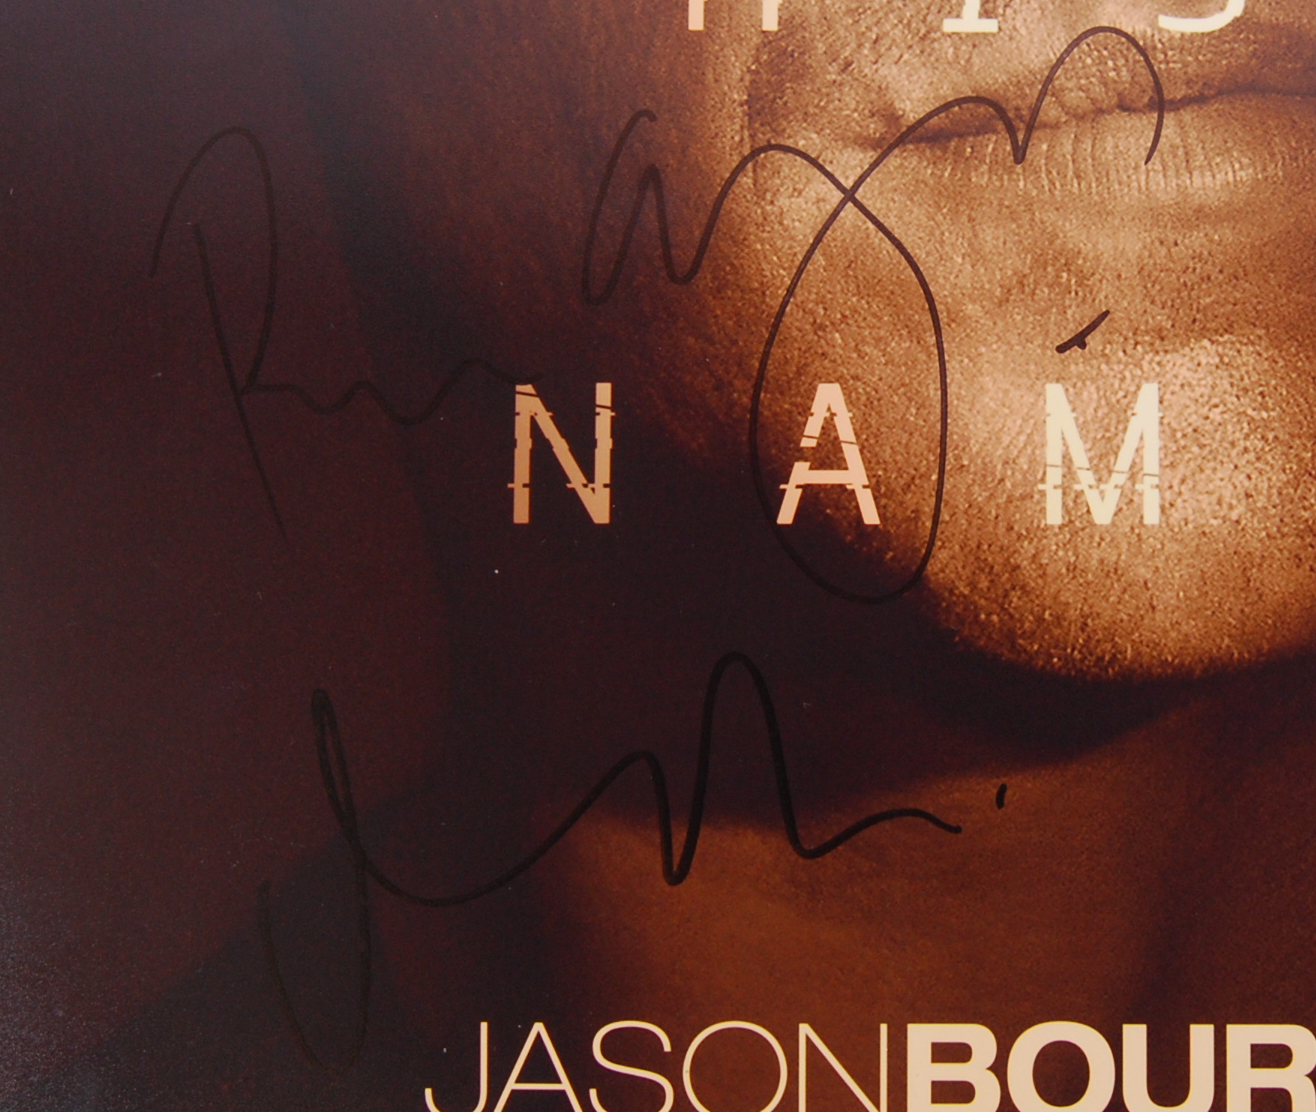 Lot 33 - JASON BOURNE - MATT DAMON & DIRECTOR - SIGNED MOVI